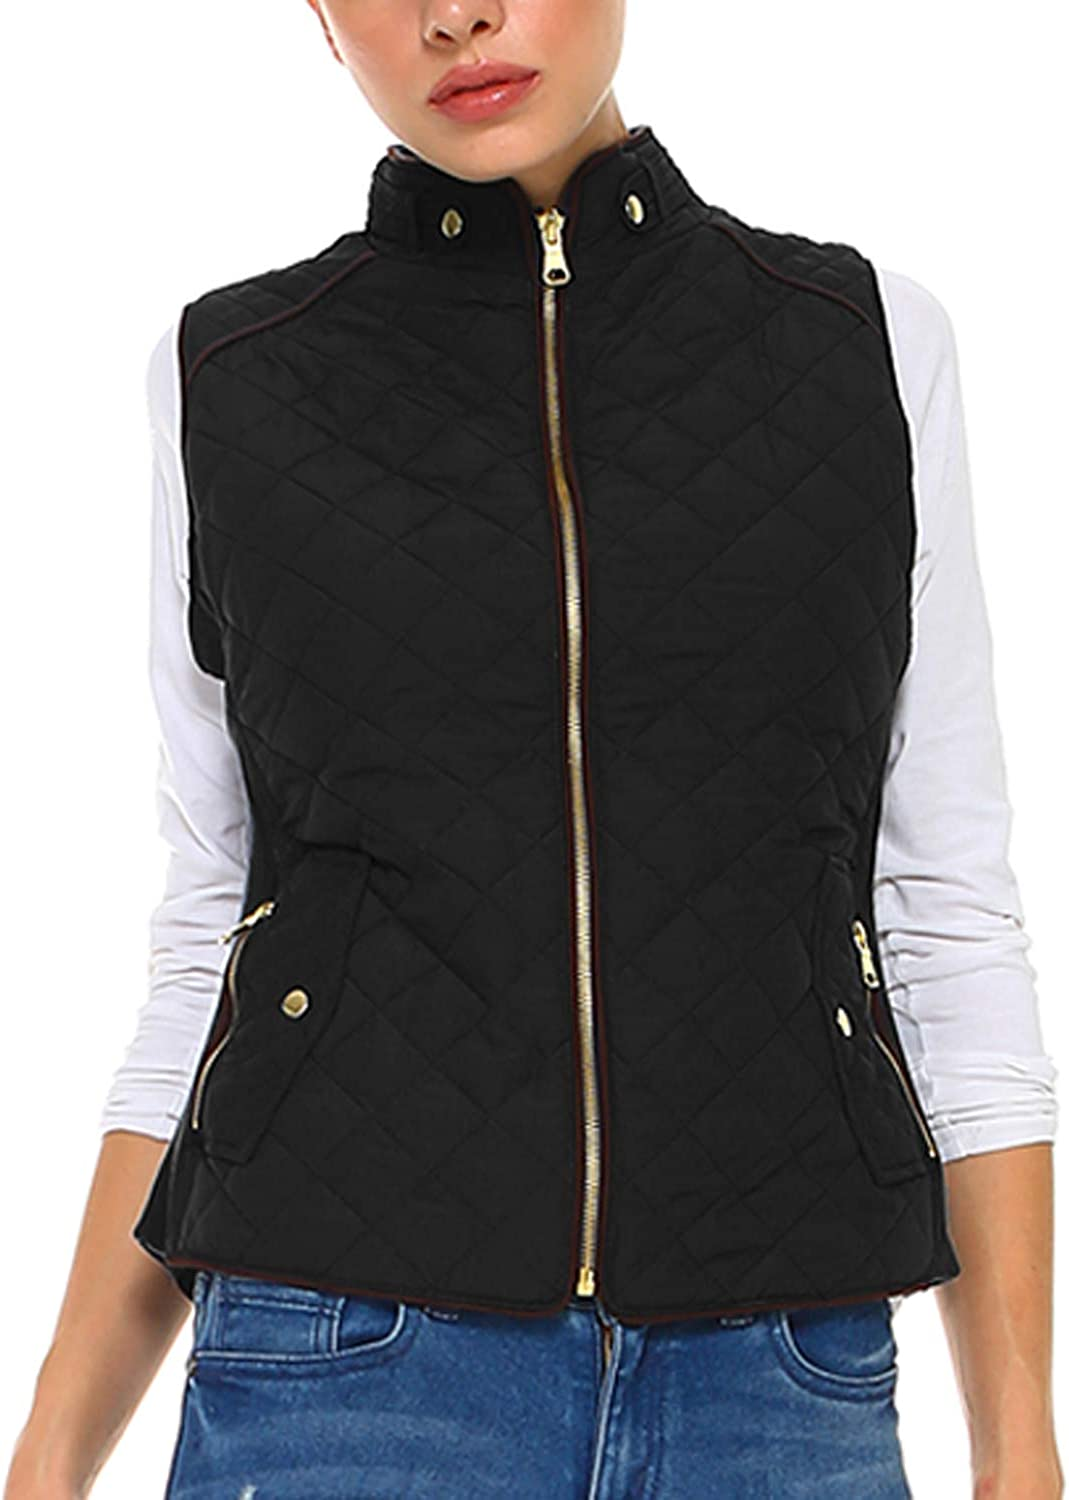 Fashionazzle Women's Lightweight Suede Contrast Quilted Zip Up V